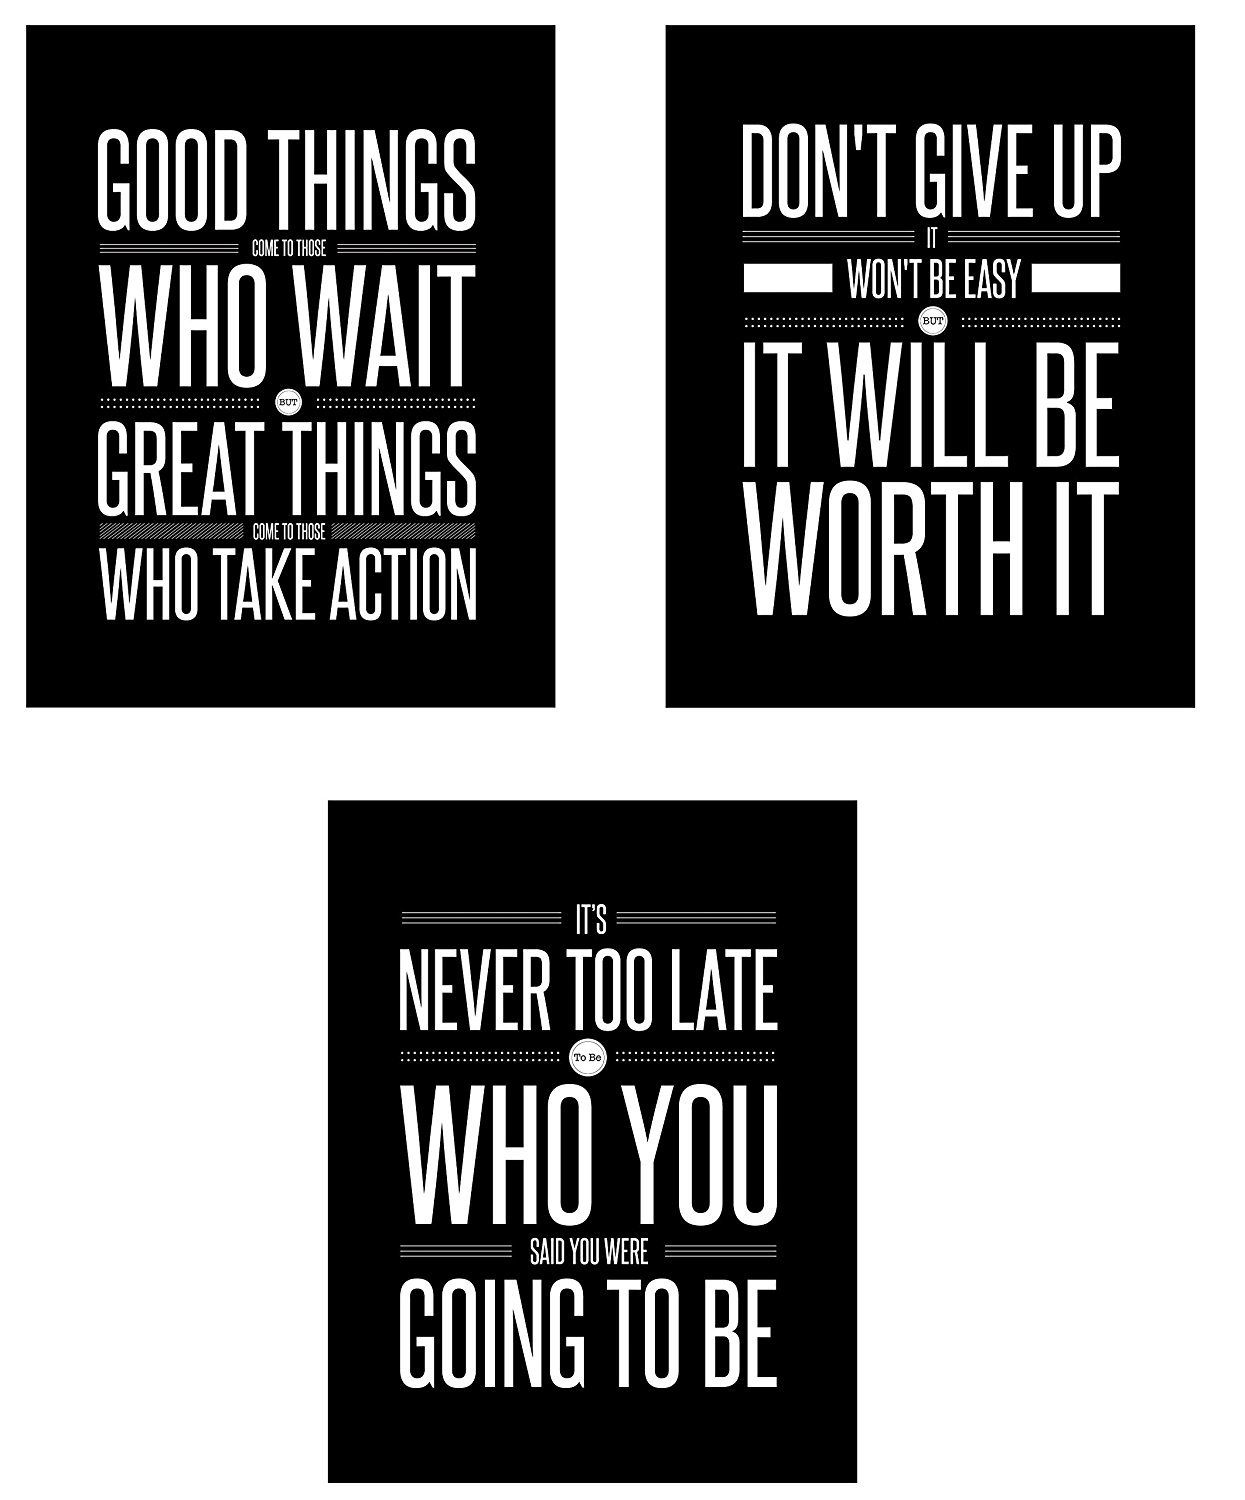 Motivational inspirational quote positive life poster picture print wall art 333